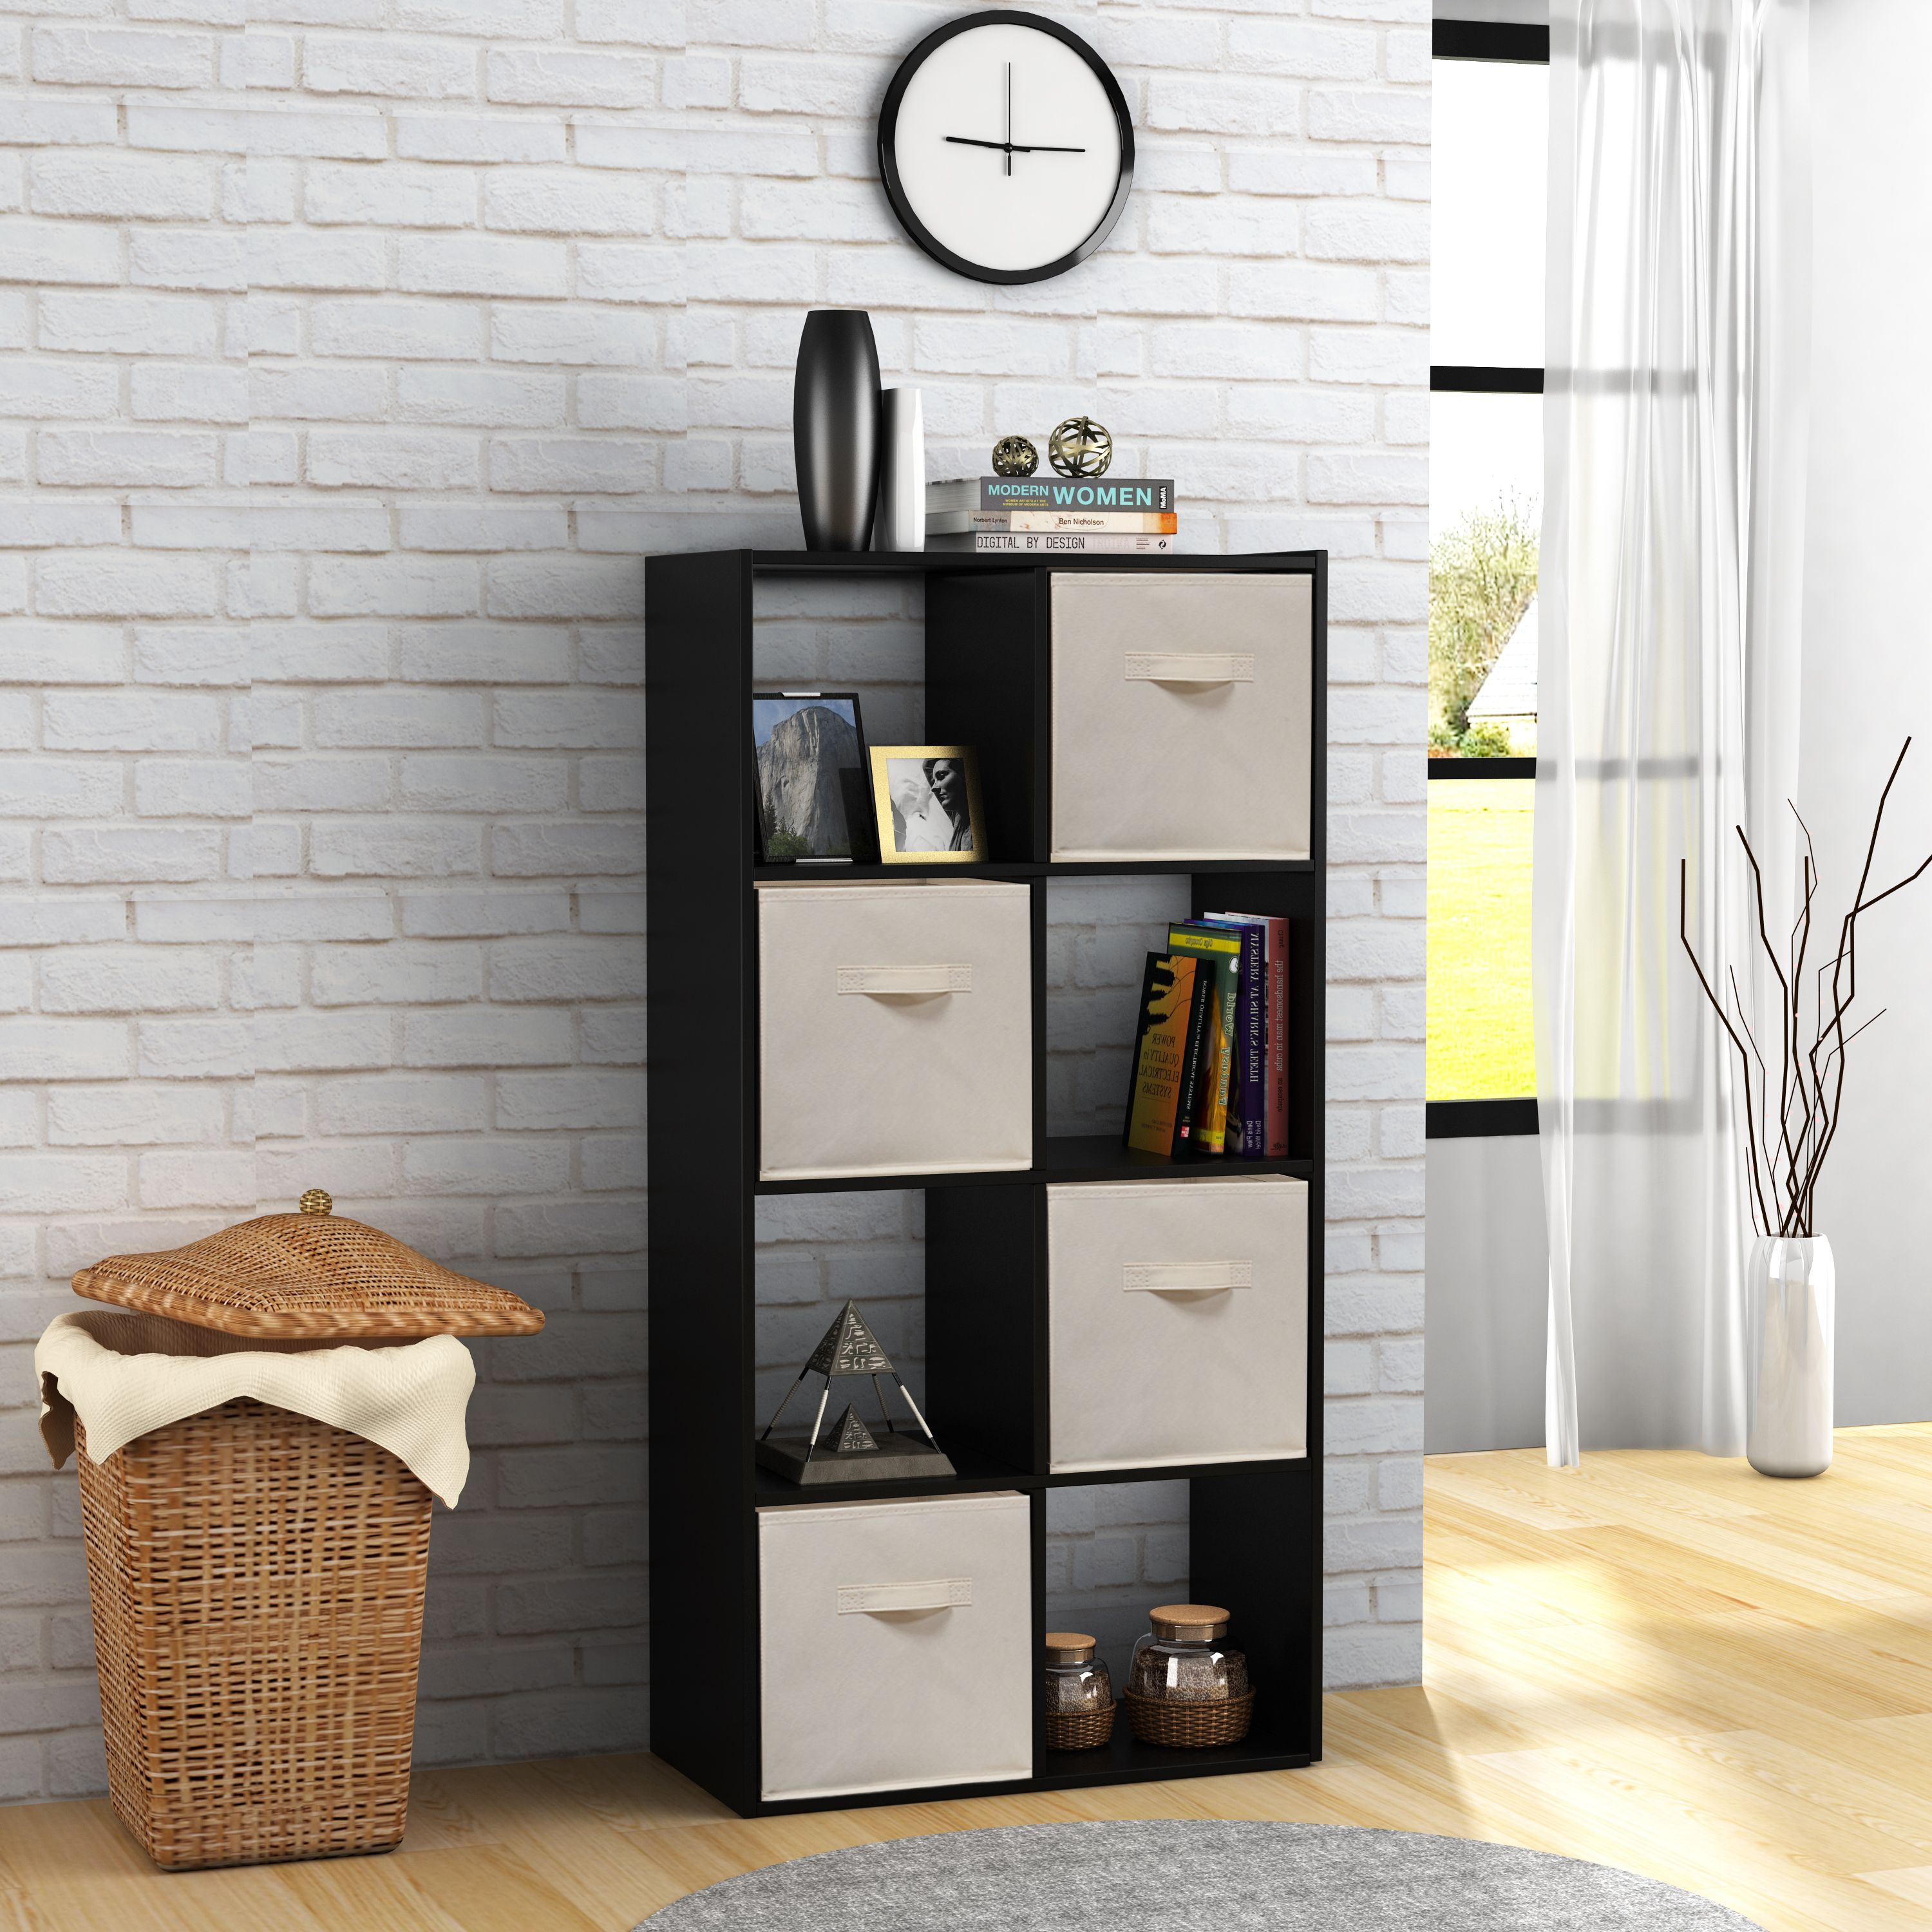 Mainstays 8 Cube Storage Organizer, Multiple Colors